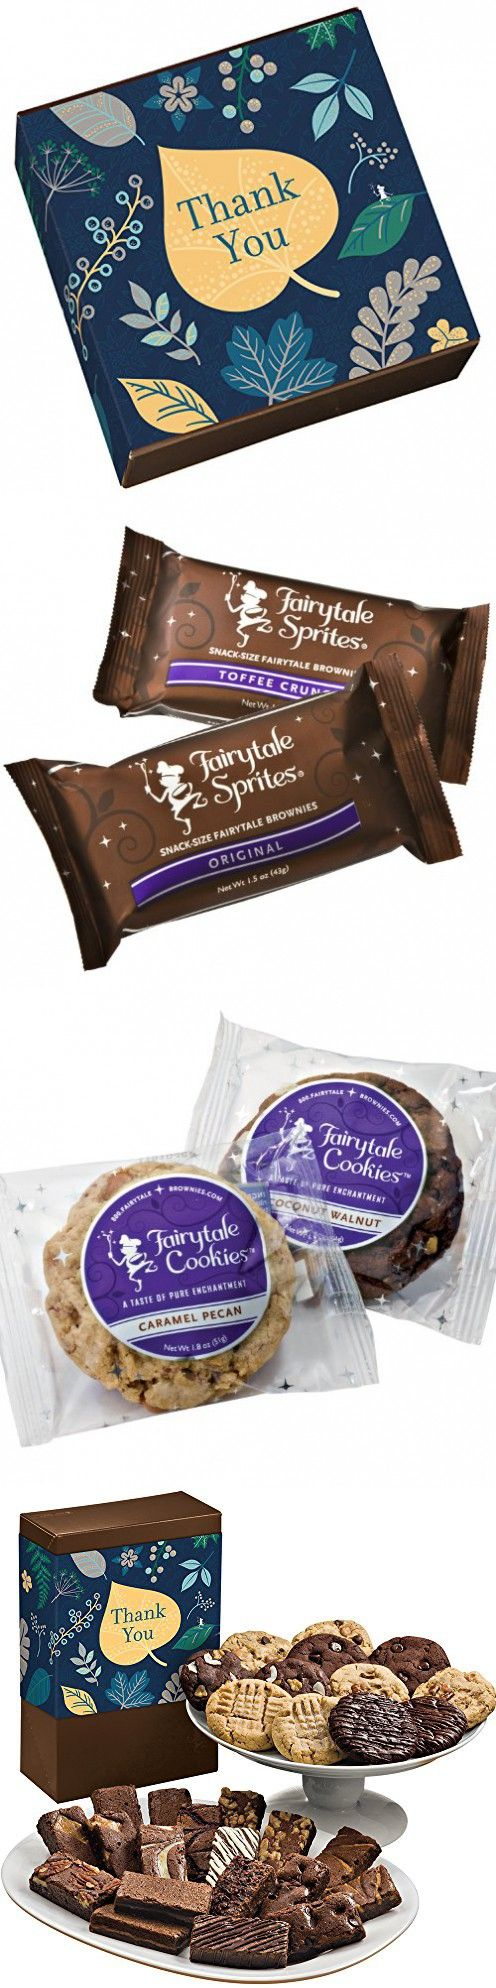 Fairytale Brownies Thank You Deluxe Cookie & Sprite Combo Gourmet Food Gift Basket Chocolate Box - 3 Inch x 1.5 Inch Snack-Size Brownies and 3.25 Inch Cookies - 30 Pieces